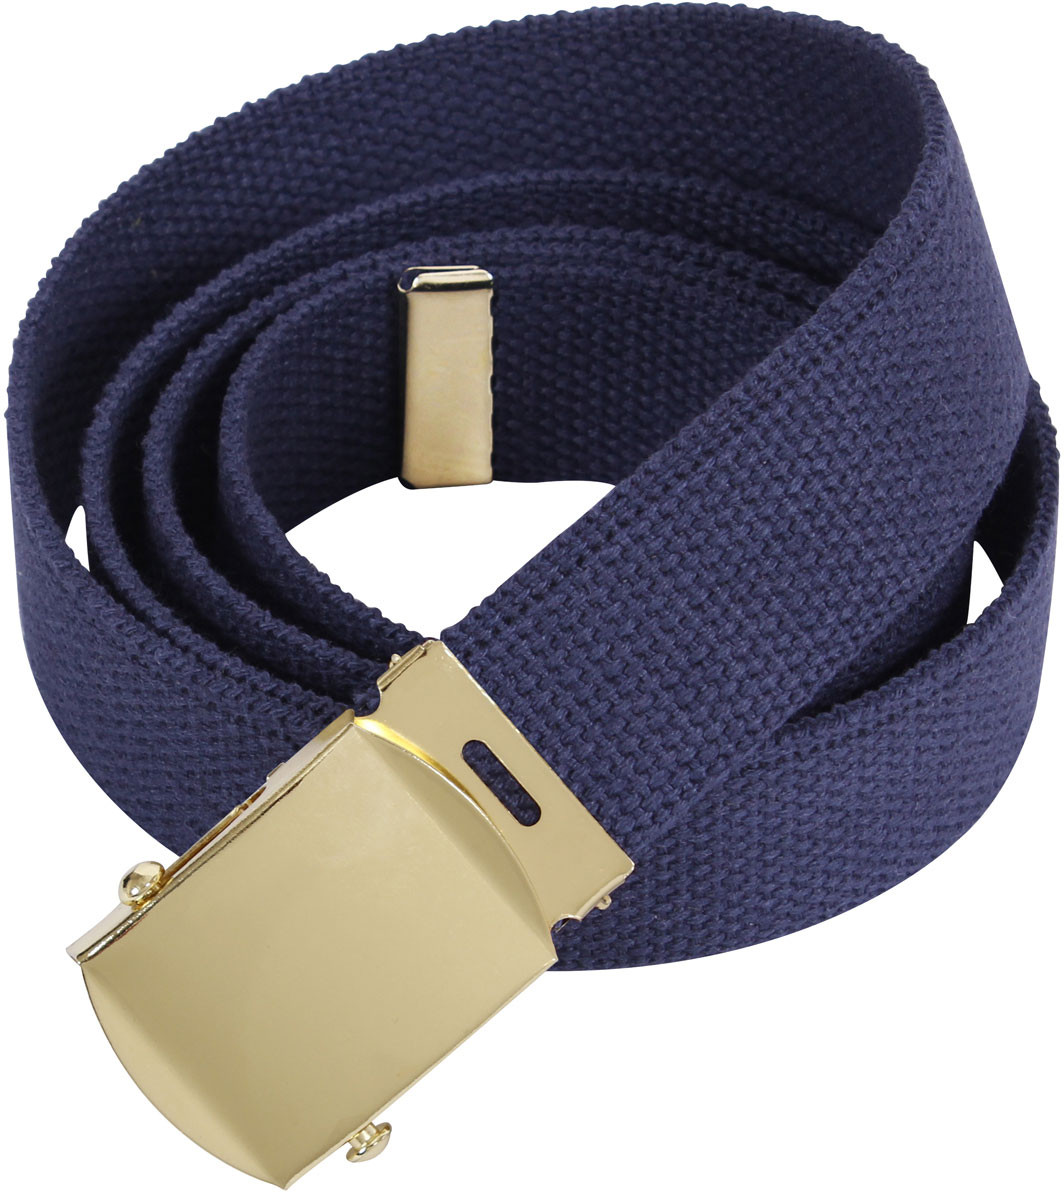 Navy Blue Military Web Belt with Brass Buckle f730bd69d